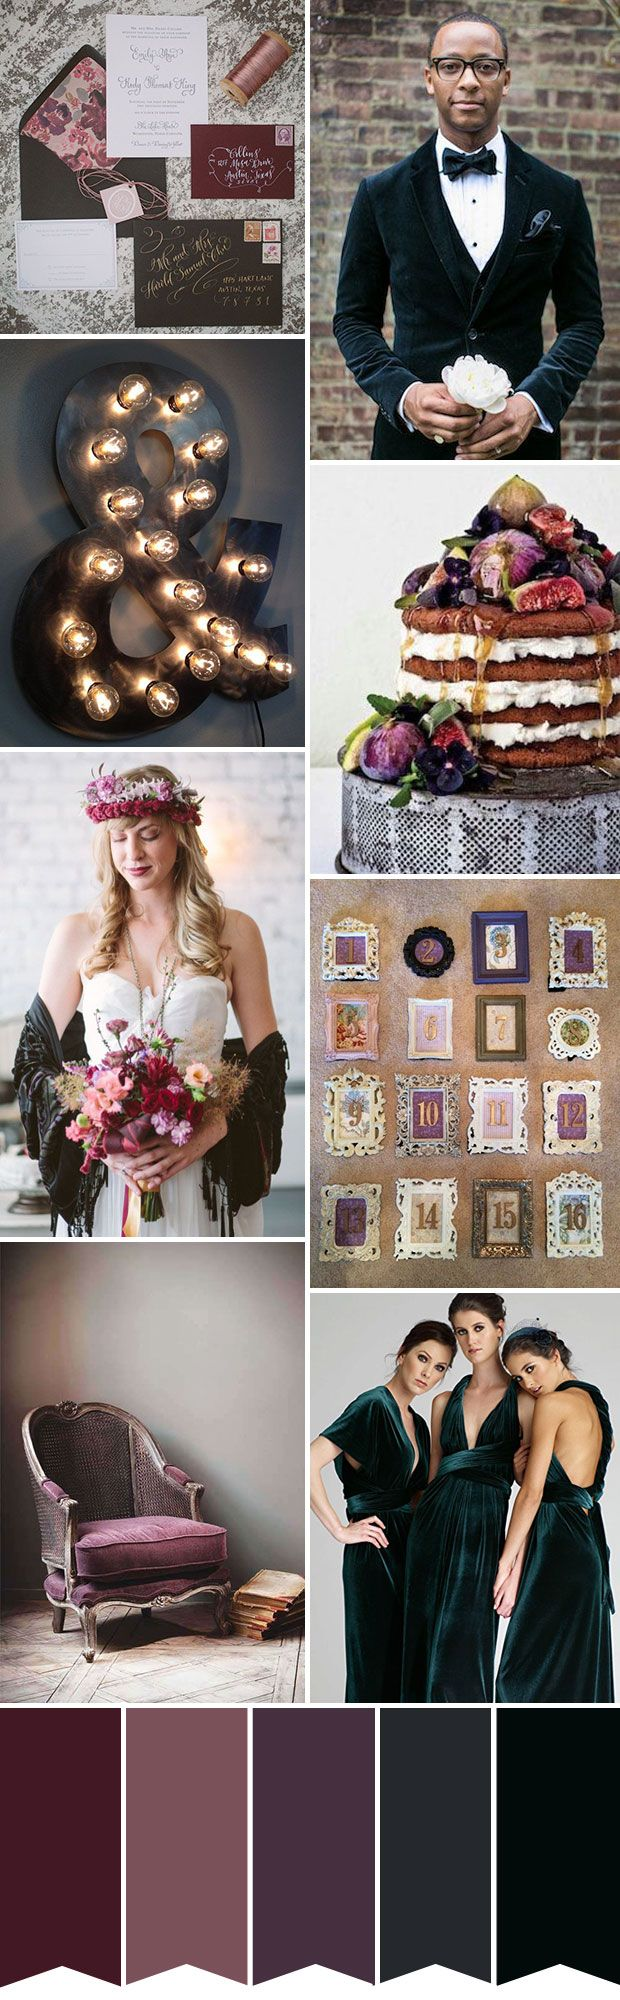 A beautifully moody, dark velvet inspired wedding color palette for Fall | www.onefabday.com